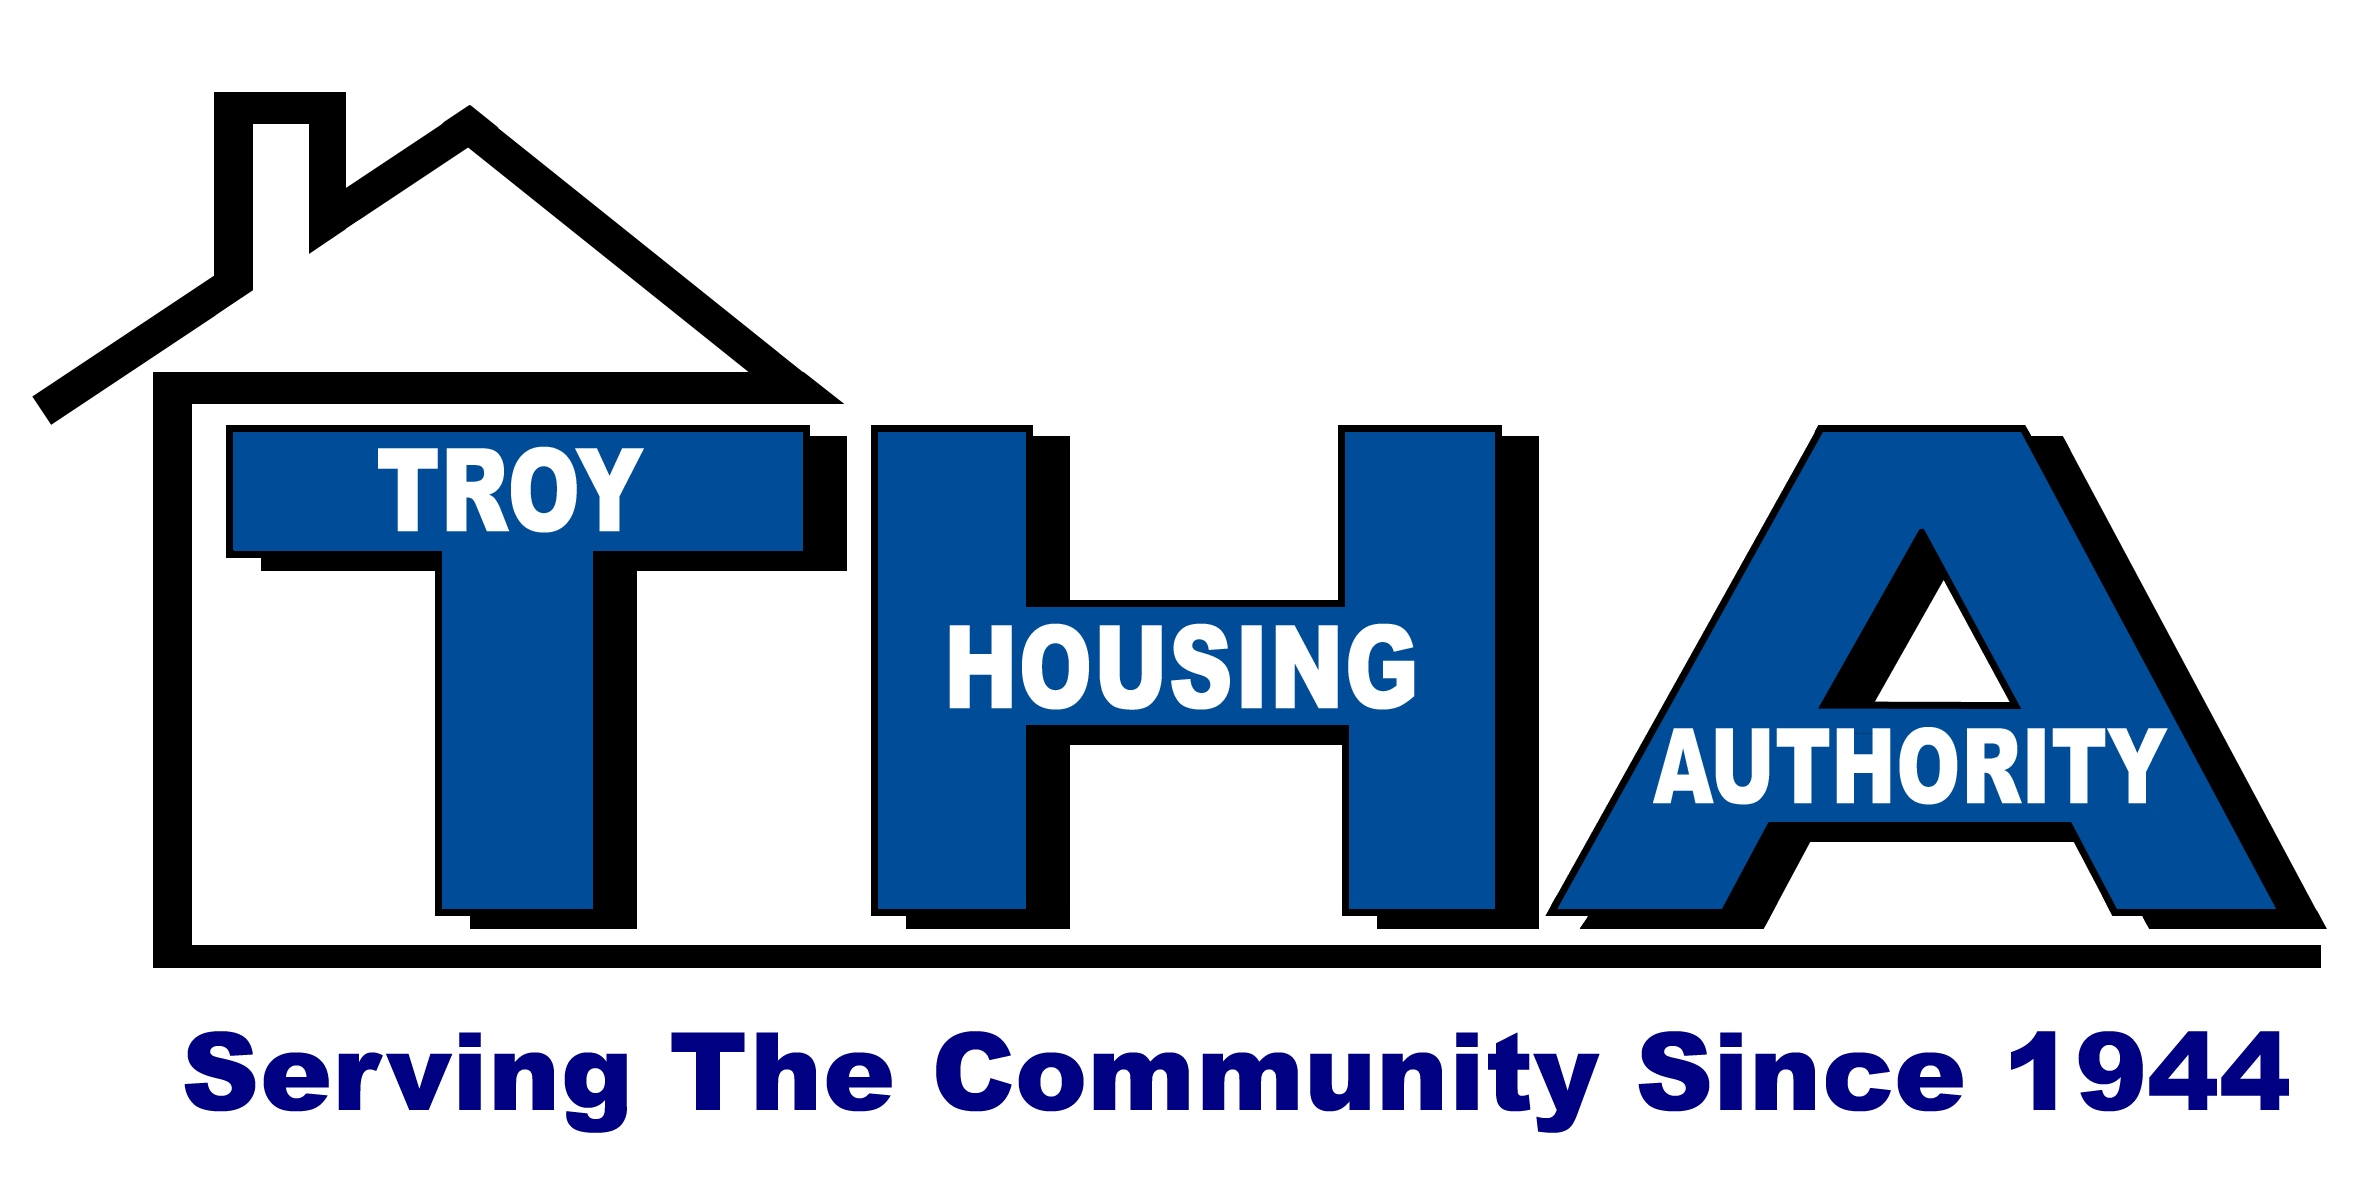 Troy Housing Authority